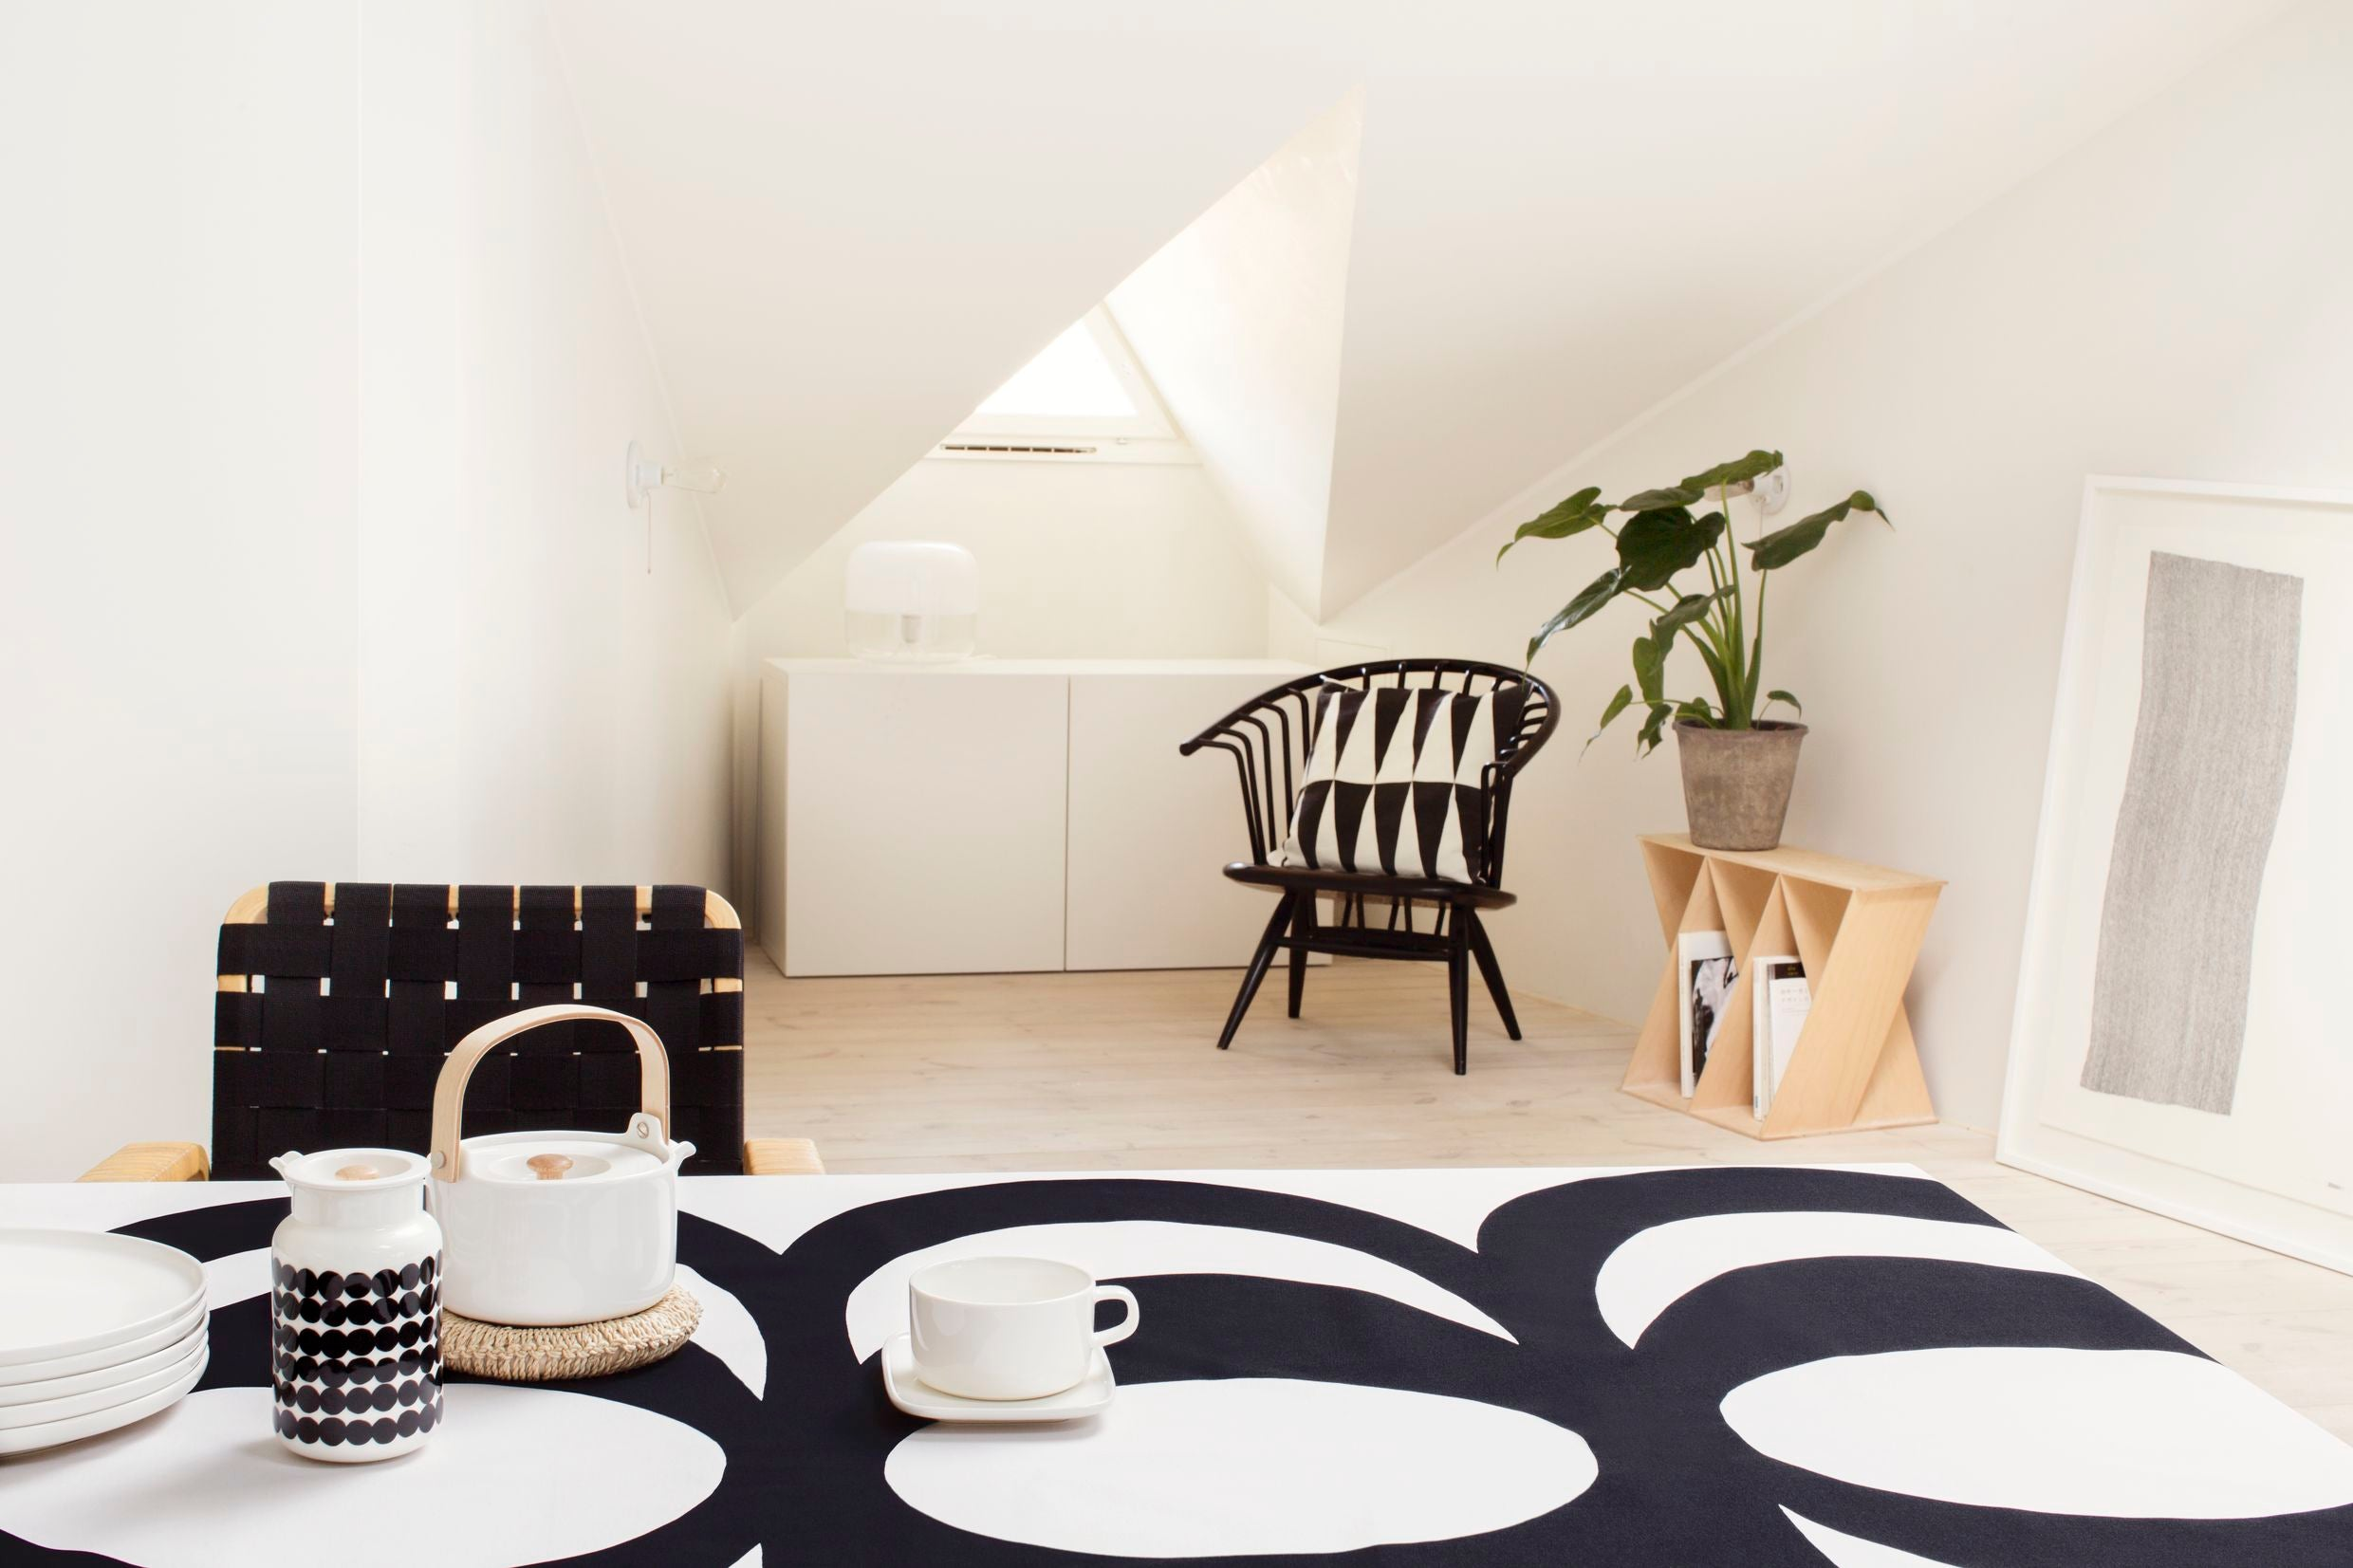 Marimekko textiles and home decor